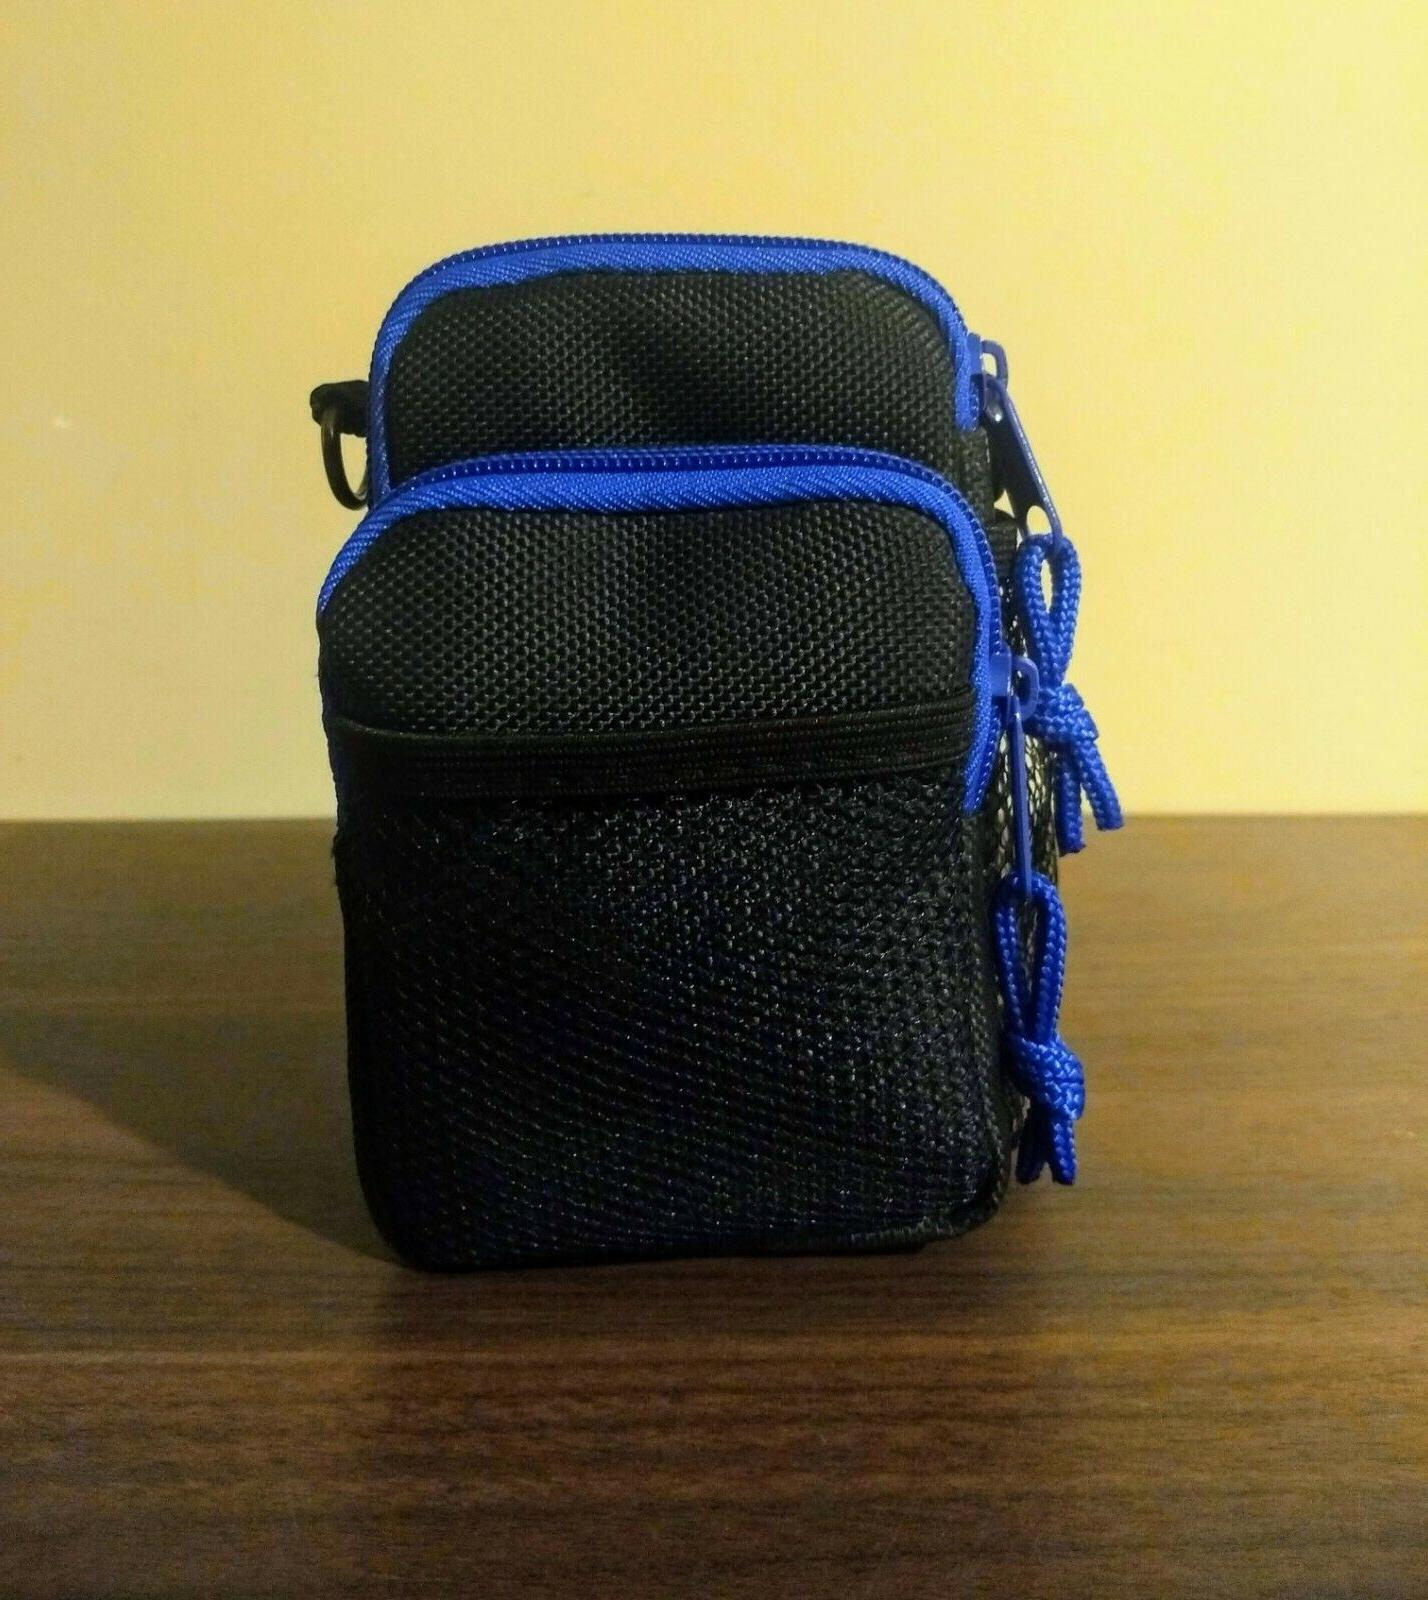 NEW! Digital Case. Blue. Quality FREE SHIPPING